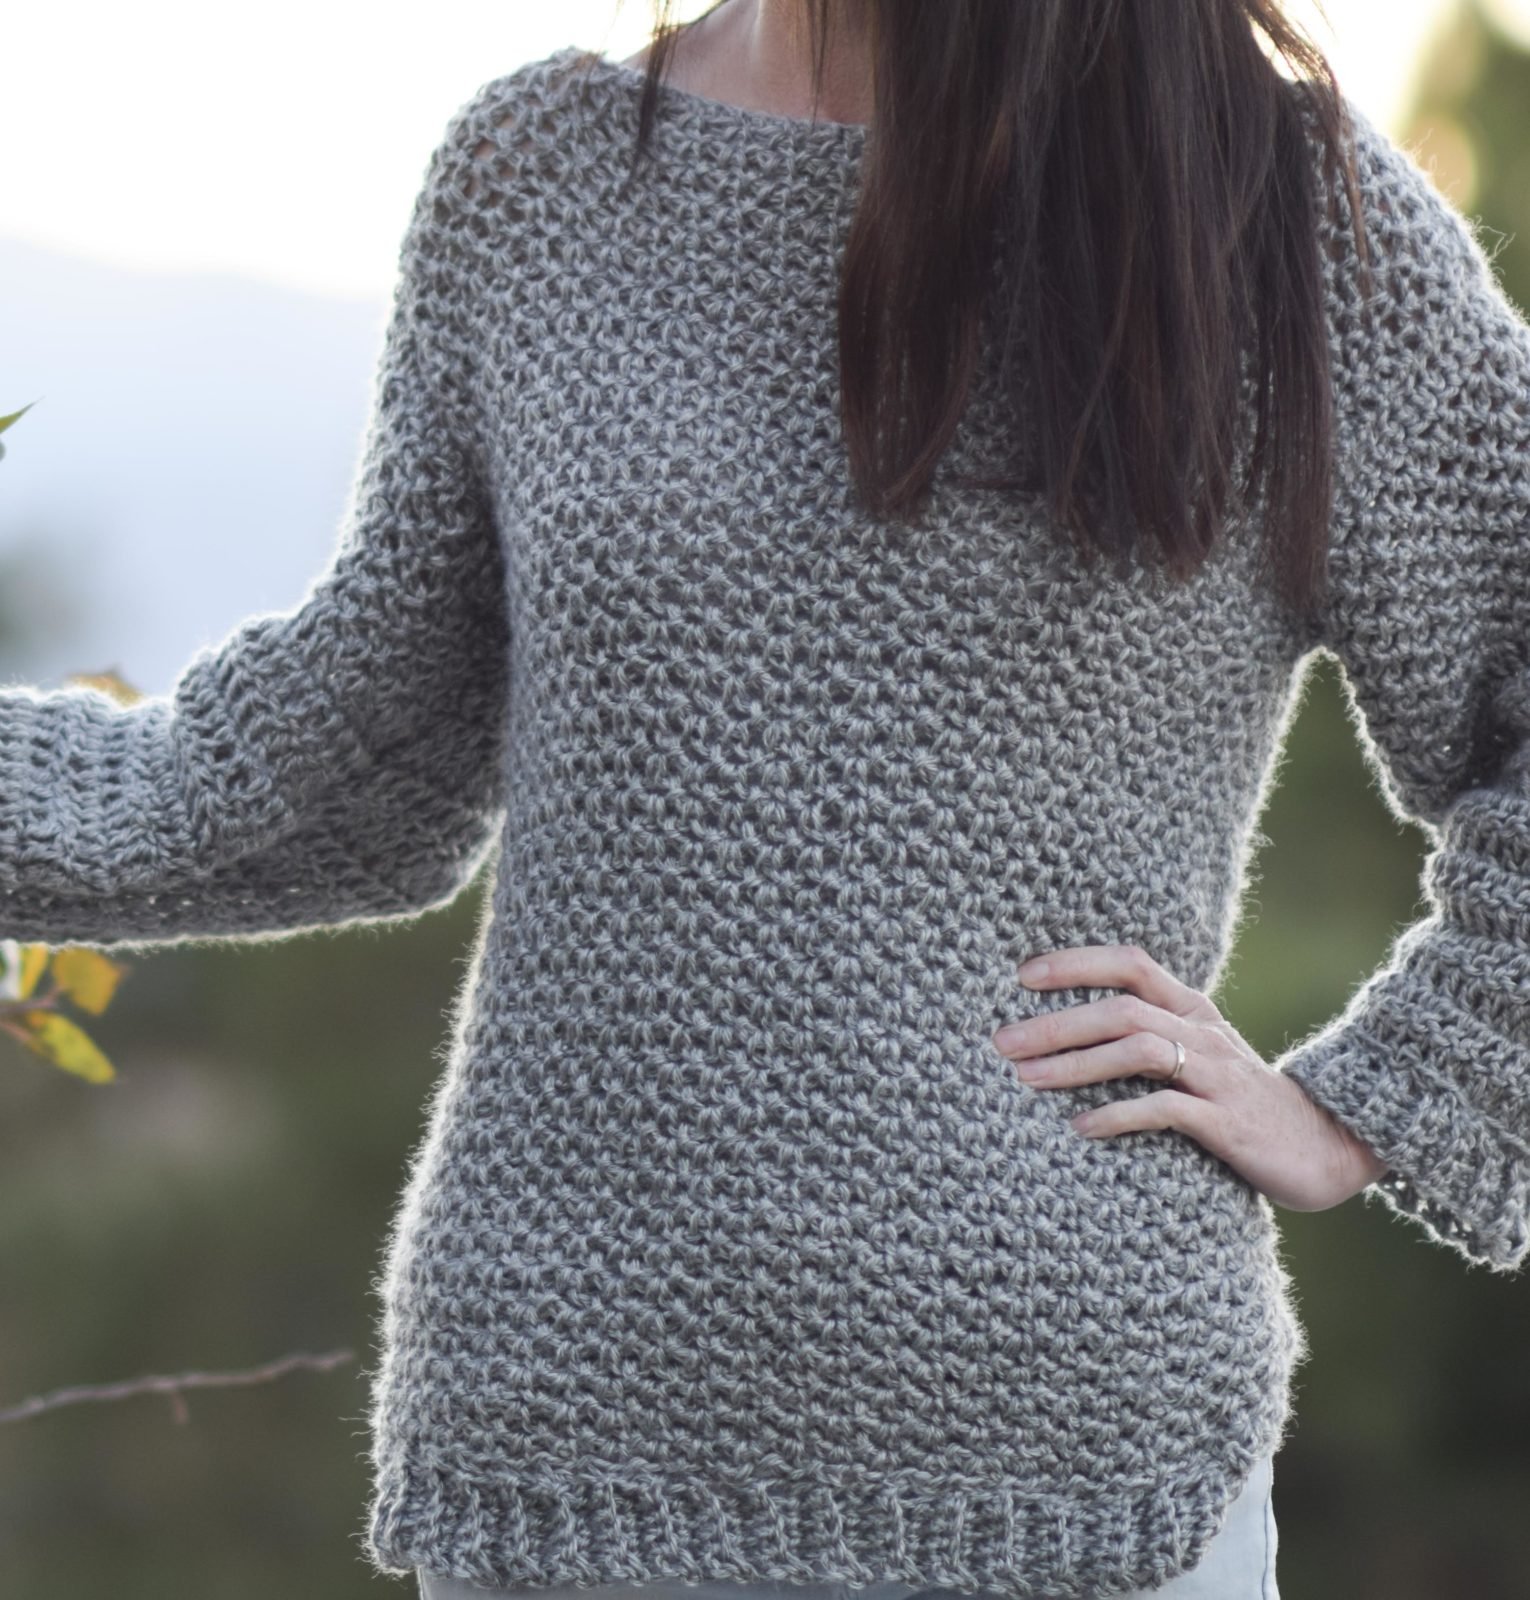 Off The Shoulder Sweater Knitting Pattern How To Make An Easy Crocheted Sweater Knit Like Mama In A Stitch